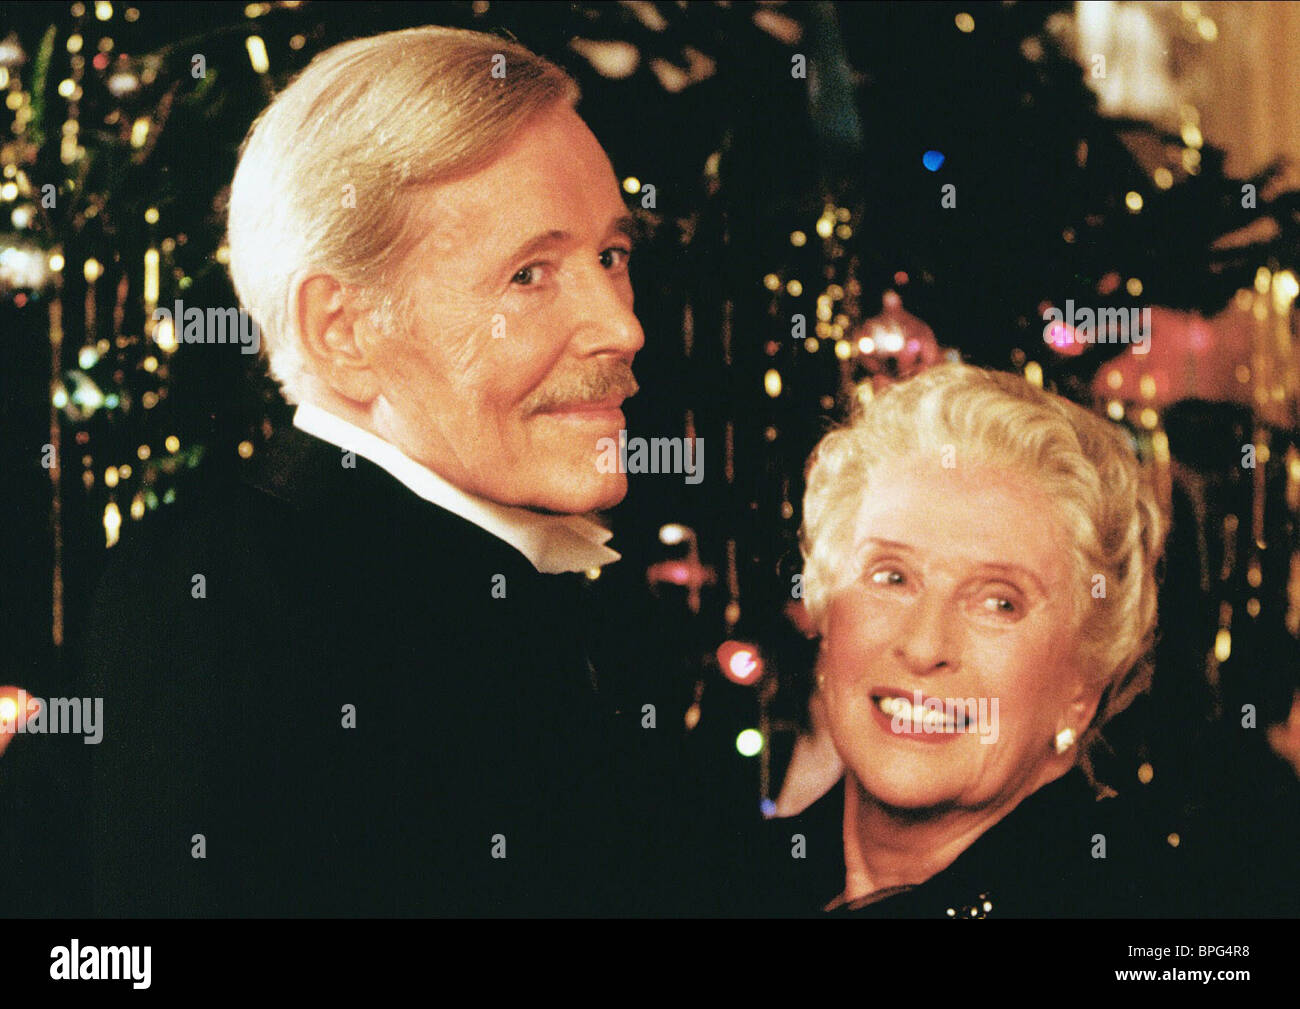 PETER O'TOOLE, ANNELIESE UHLIG, COMING HOME, 1997 - Stock Image